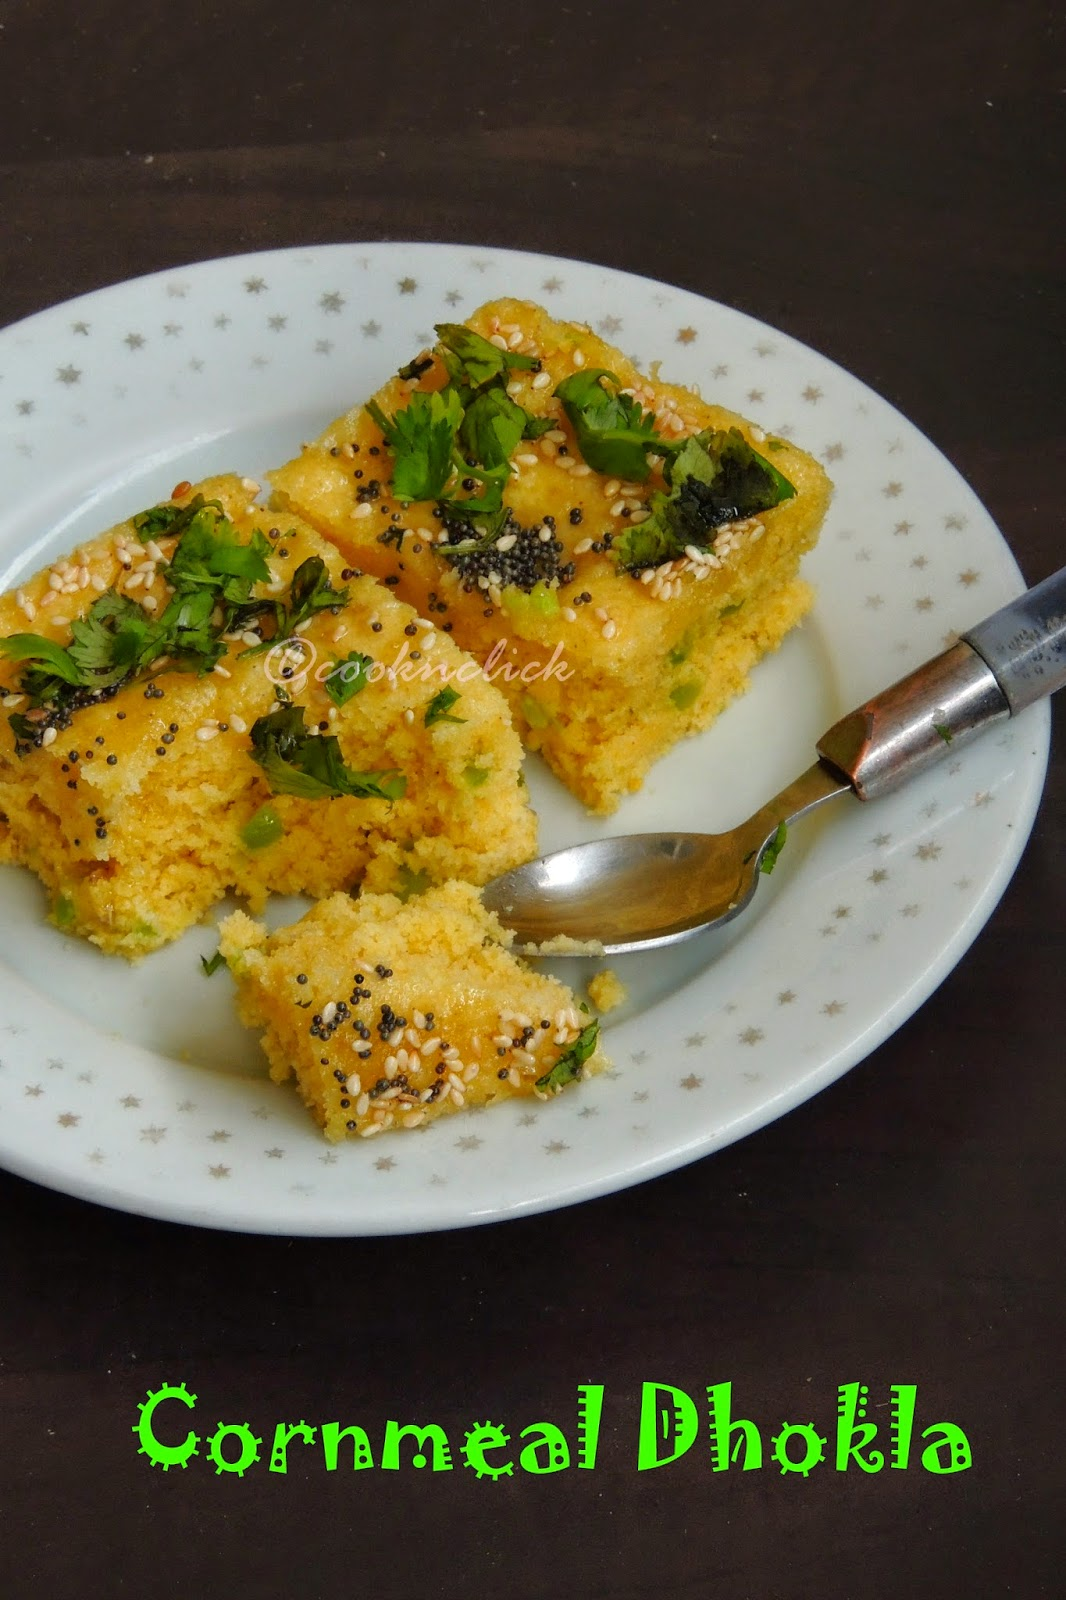 Cornmeal dhokla, corn dhokla, cornmeal and bellpepper dhokla